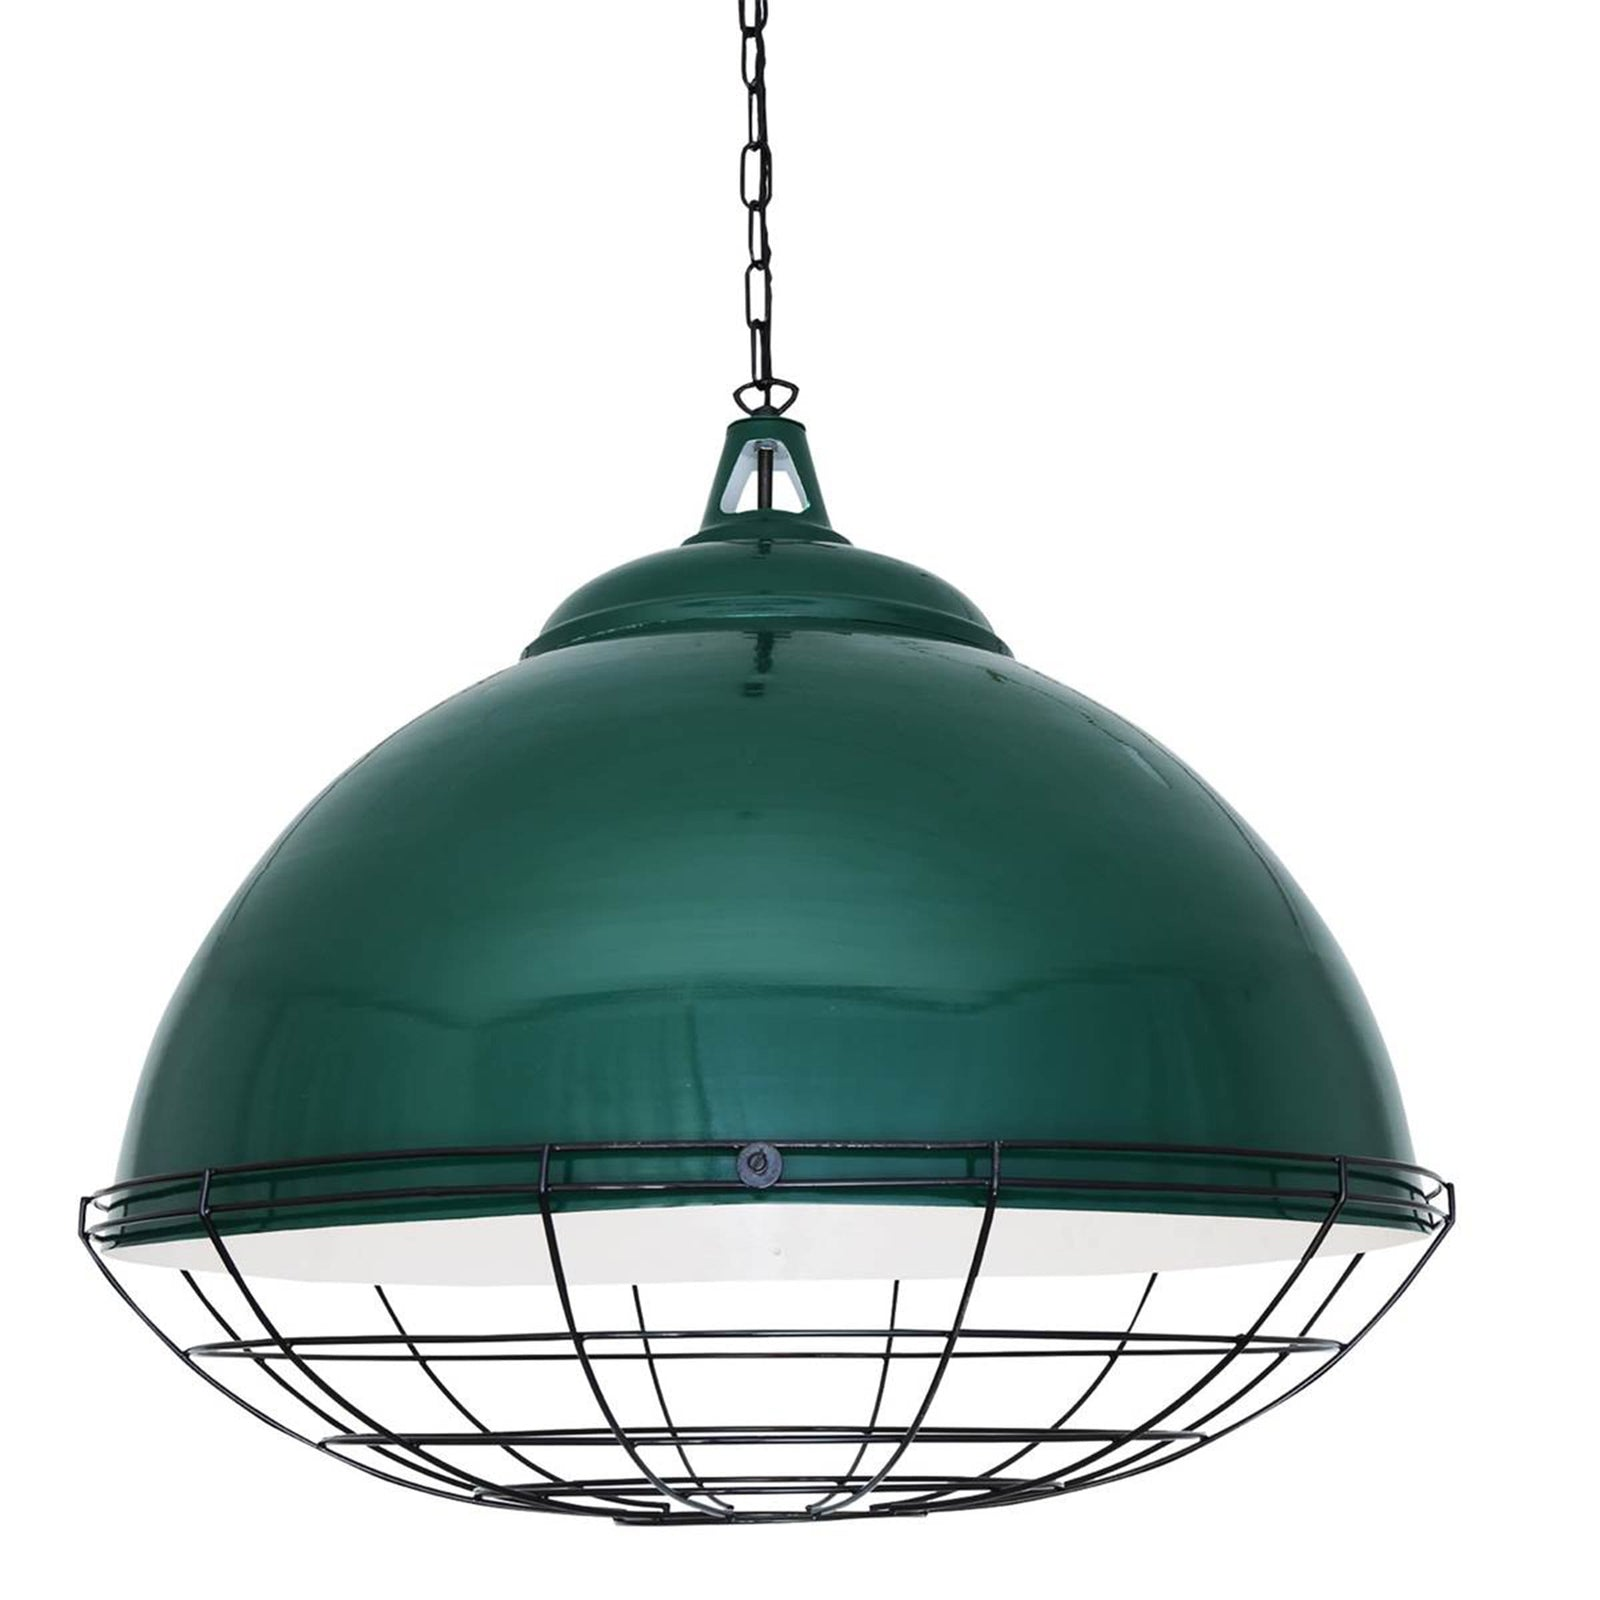 Mullan Lighting Lighting Racing Green Brussels Pendant